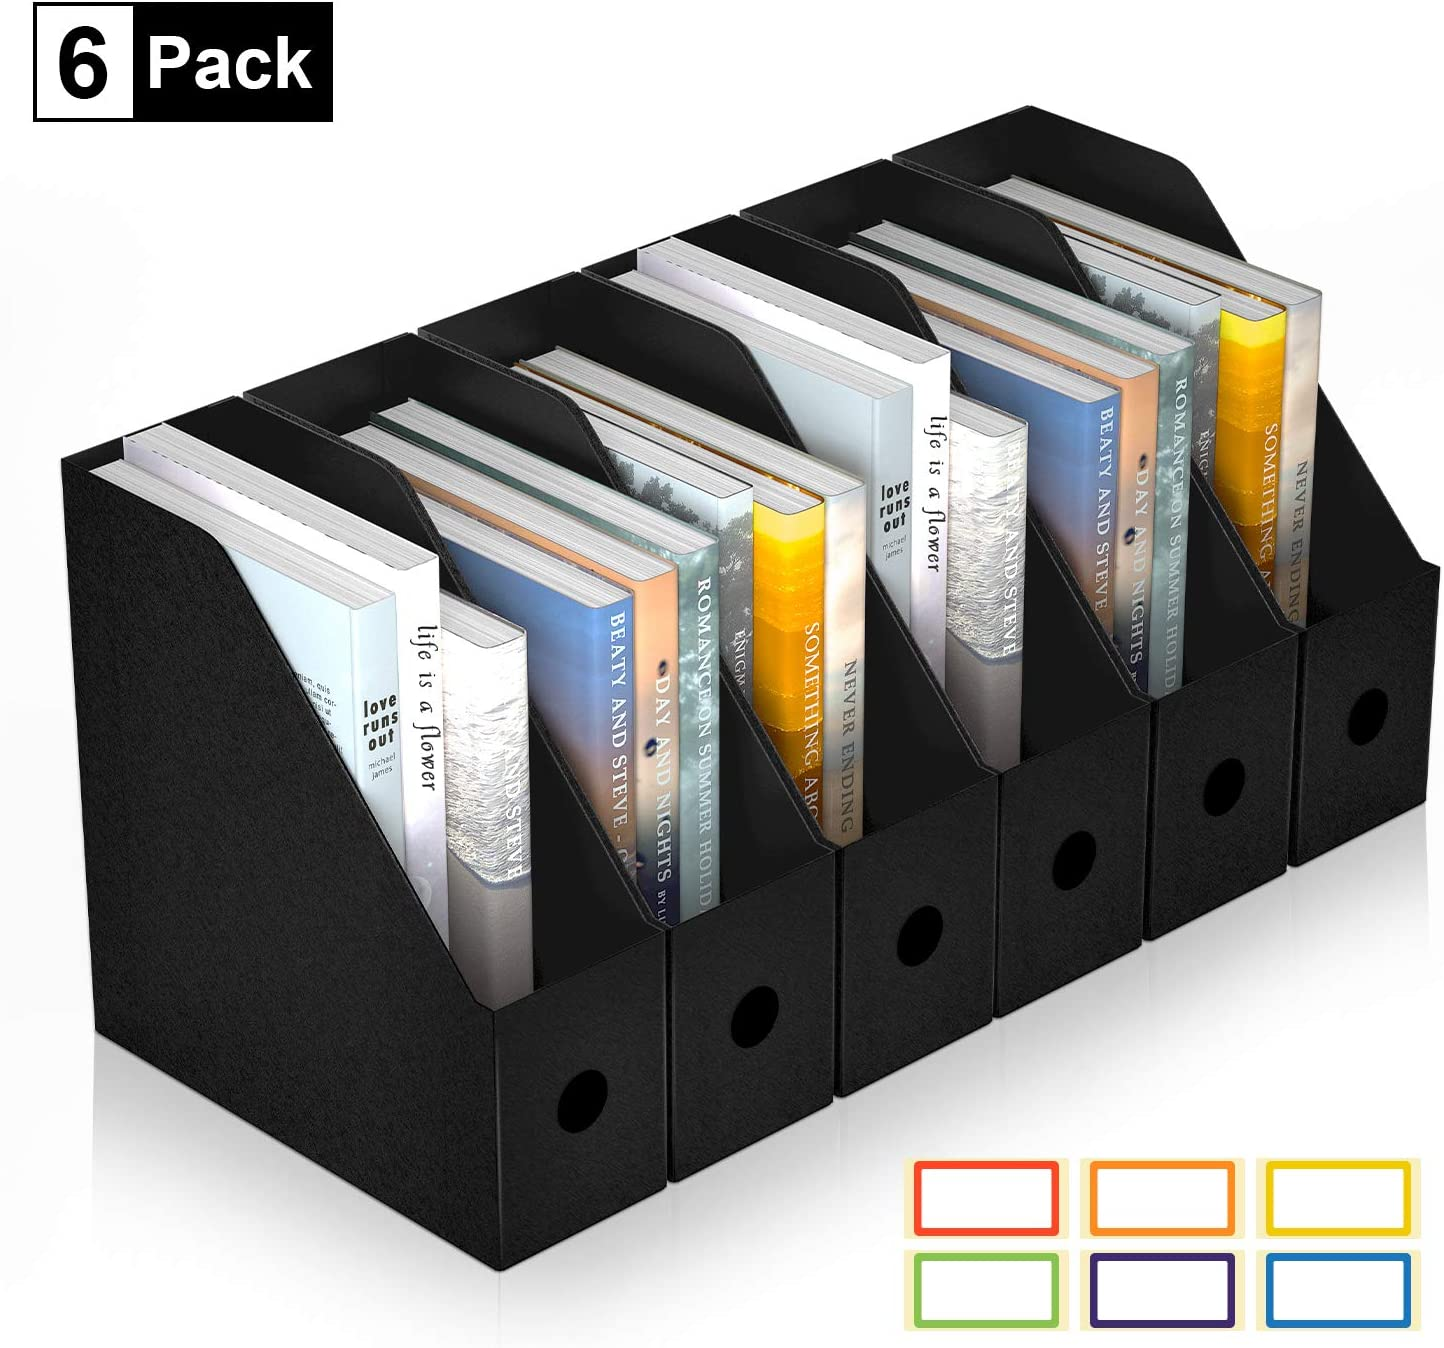 ABClife Plastic Foldable Black Magazine File Holder,6 Pack Desk Organizer with Colored Labels,Heavy-Duty Magazine File Boxes/Magazine Rack,Home Storage & Office Organization for Paperwork, Folders